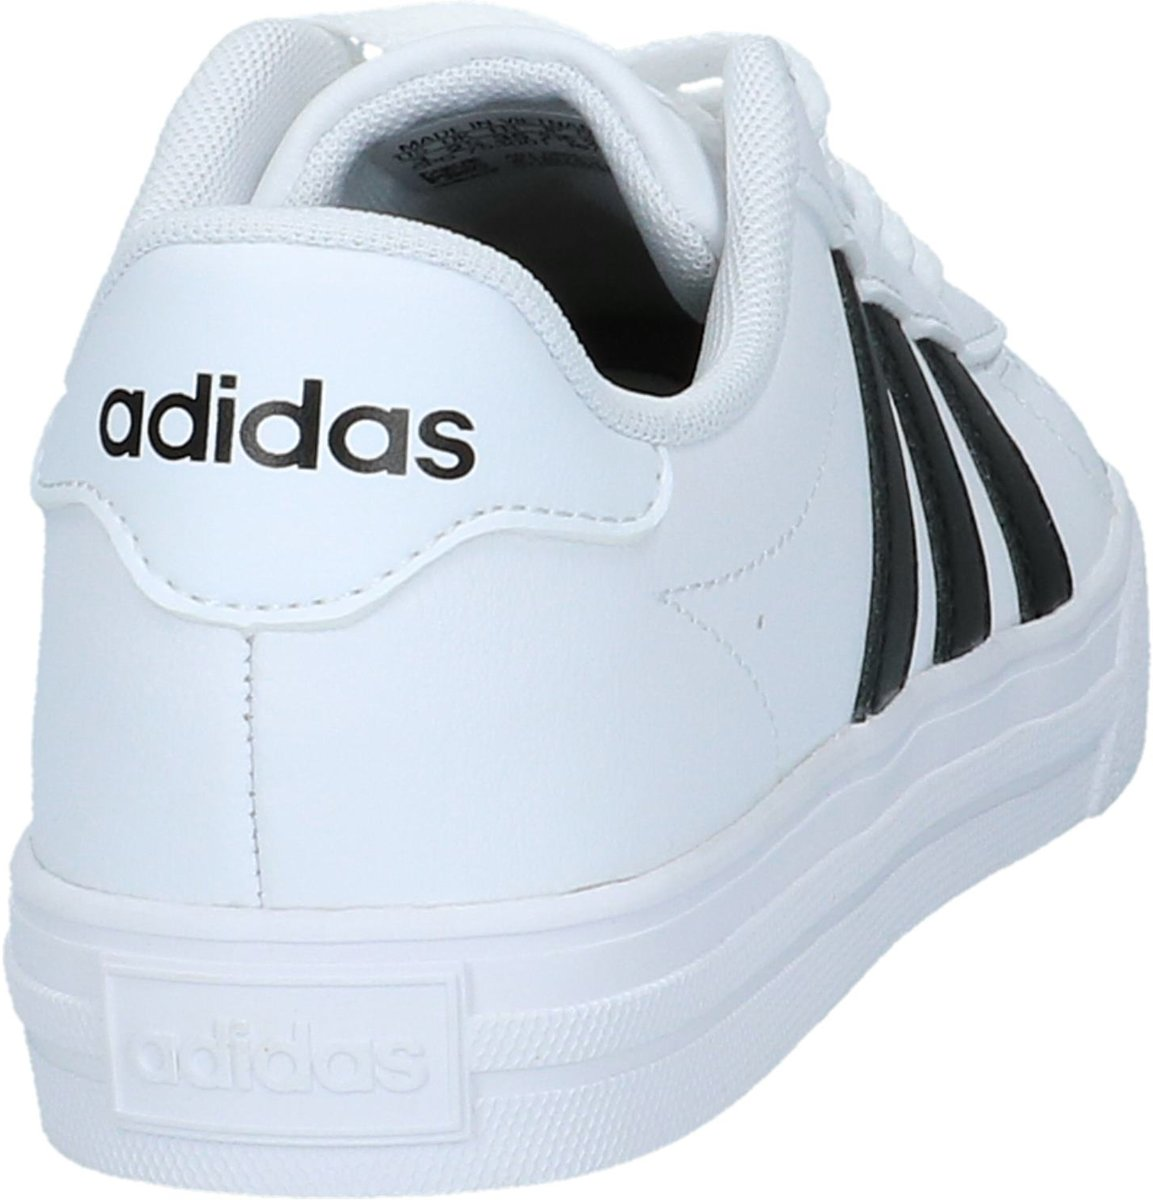 new style 6adc3 b5112 bol.com  Adidas - Daily 2.0 K - Sneaker laag sportief - Jongens - Maat 35  - Wit - Ftwr White